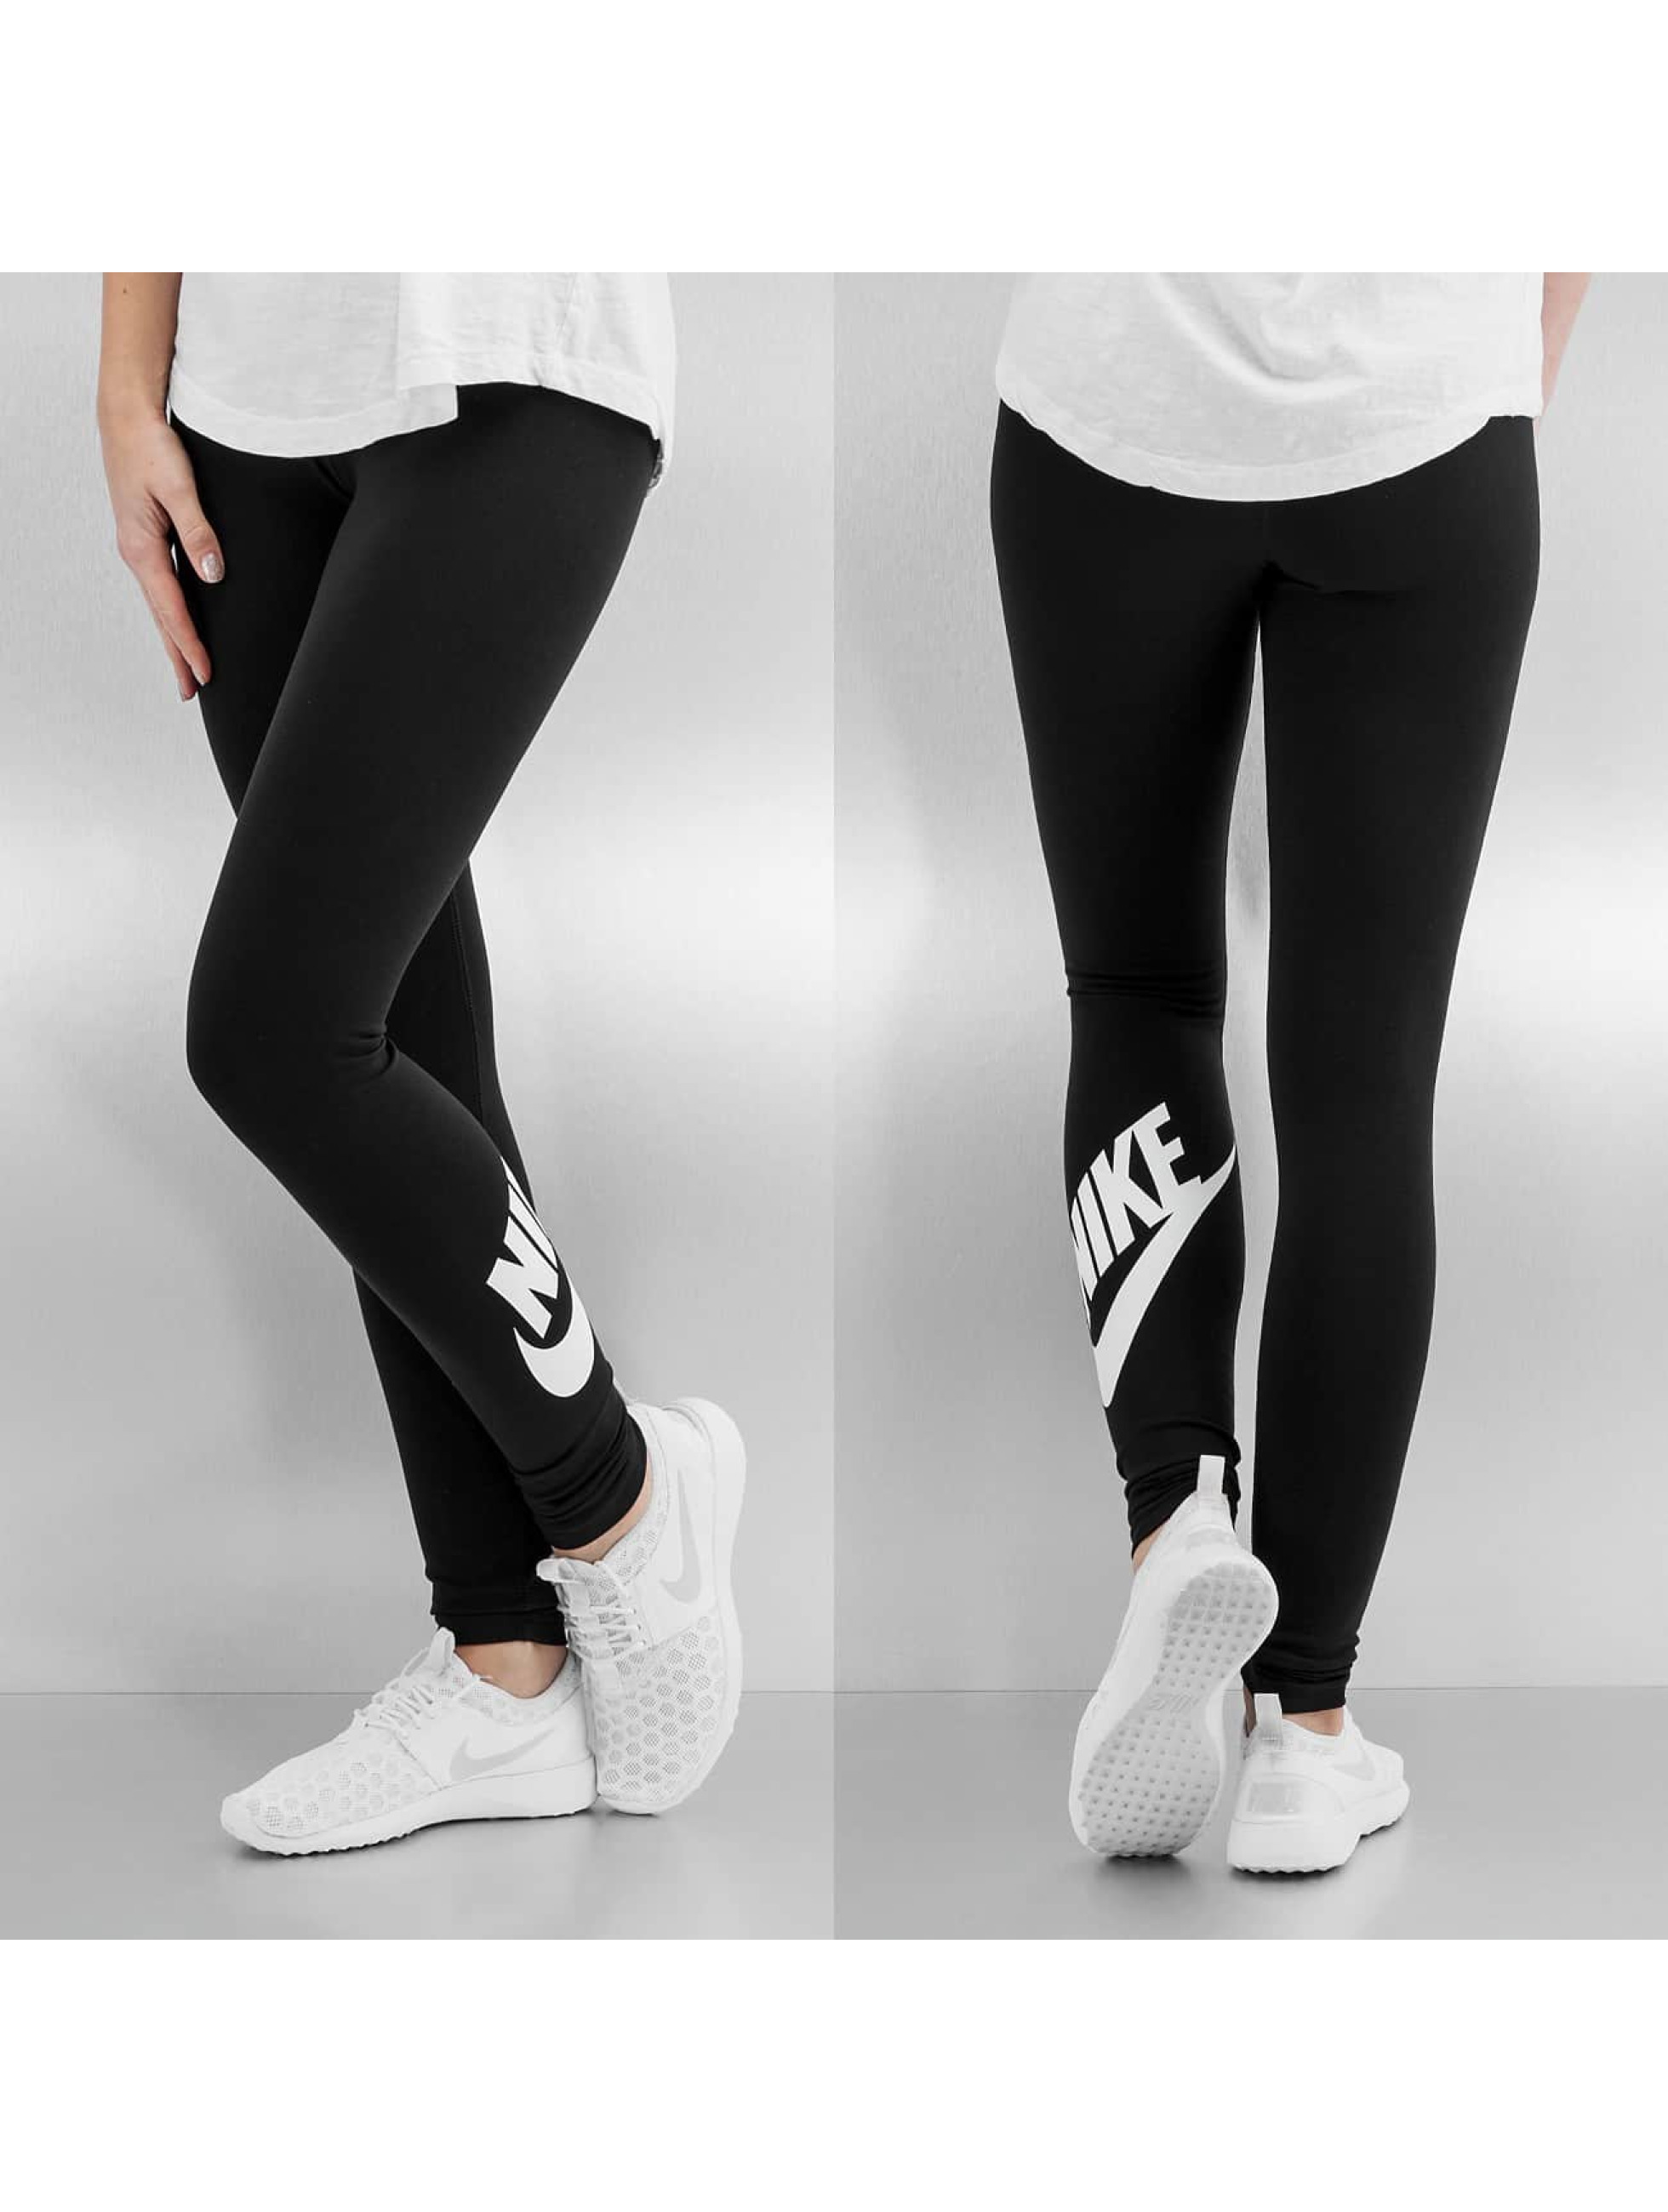 legging nike femme noir et blanc. Black Bedroom Furniture Sets. Home Design Ideas